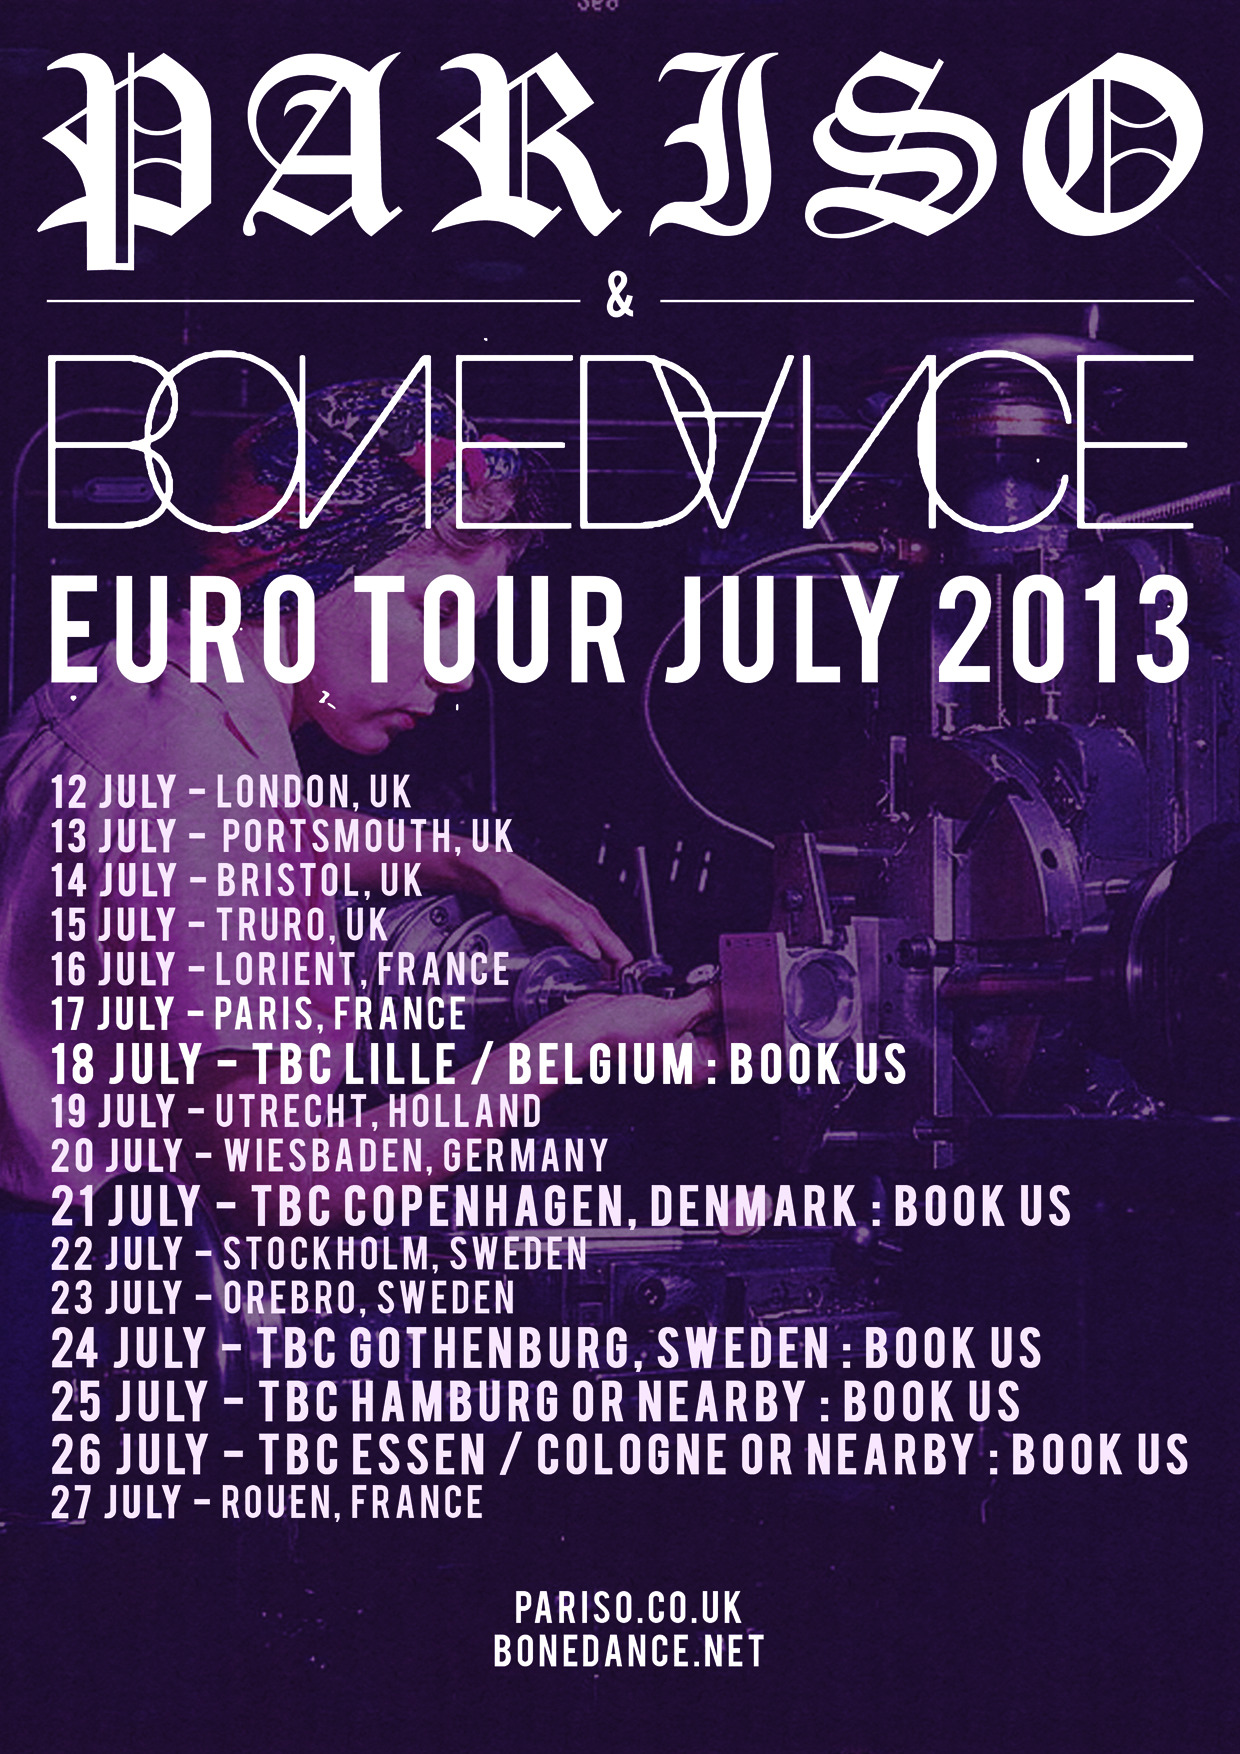 This July we are doing a UK + European tour with the outstanding BONEDANCE who are flying over from the US to join us. We still have a few shows left to confirm so if you know someone who can help out in the areas highlighted please get in touch - pariso[dot]band[at]gmail[dot]com